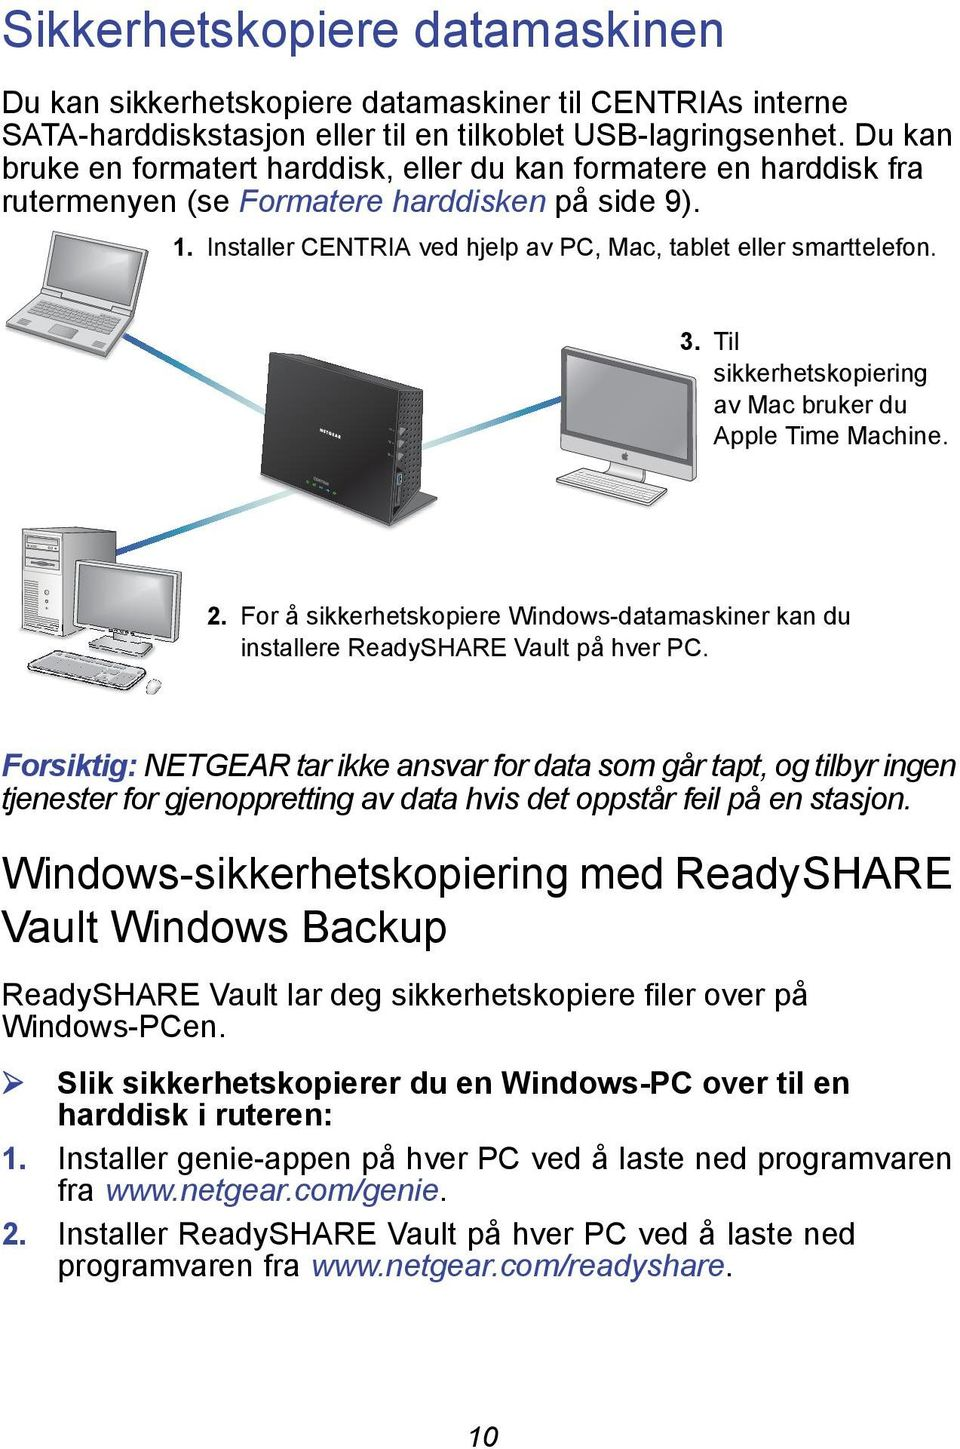 Til sikkerhetskopiering av Mac bruker du Apple Time Machine. 2. For å sikkerhetskopiere Windows-datamaskiner kan du installere ReadySHARE Vault på hver PC.